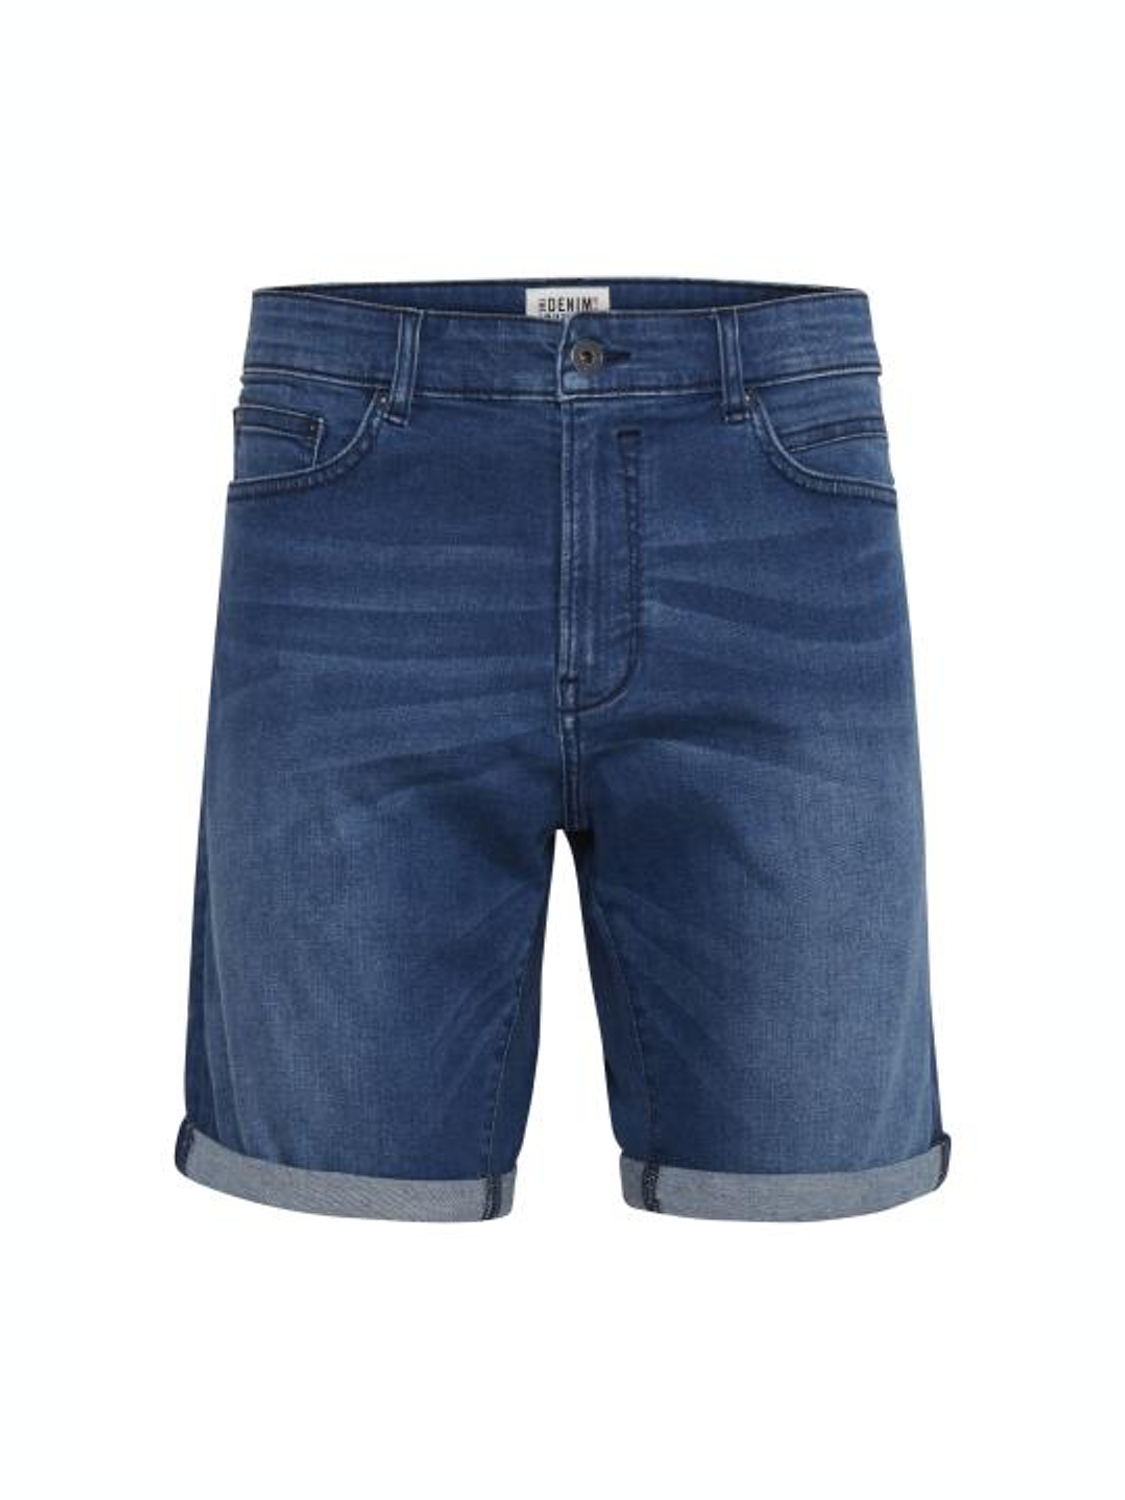 SOLID - DENIM SHORTS RYDER BLUE | GATE 36 Hobro